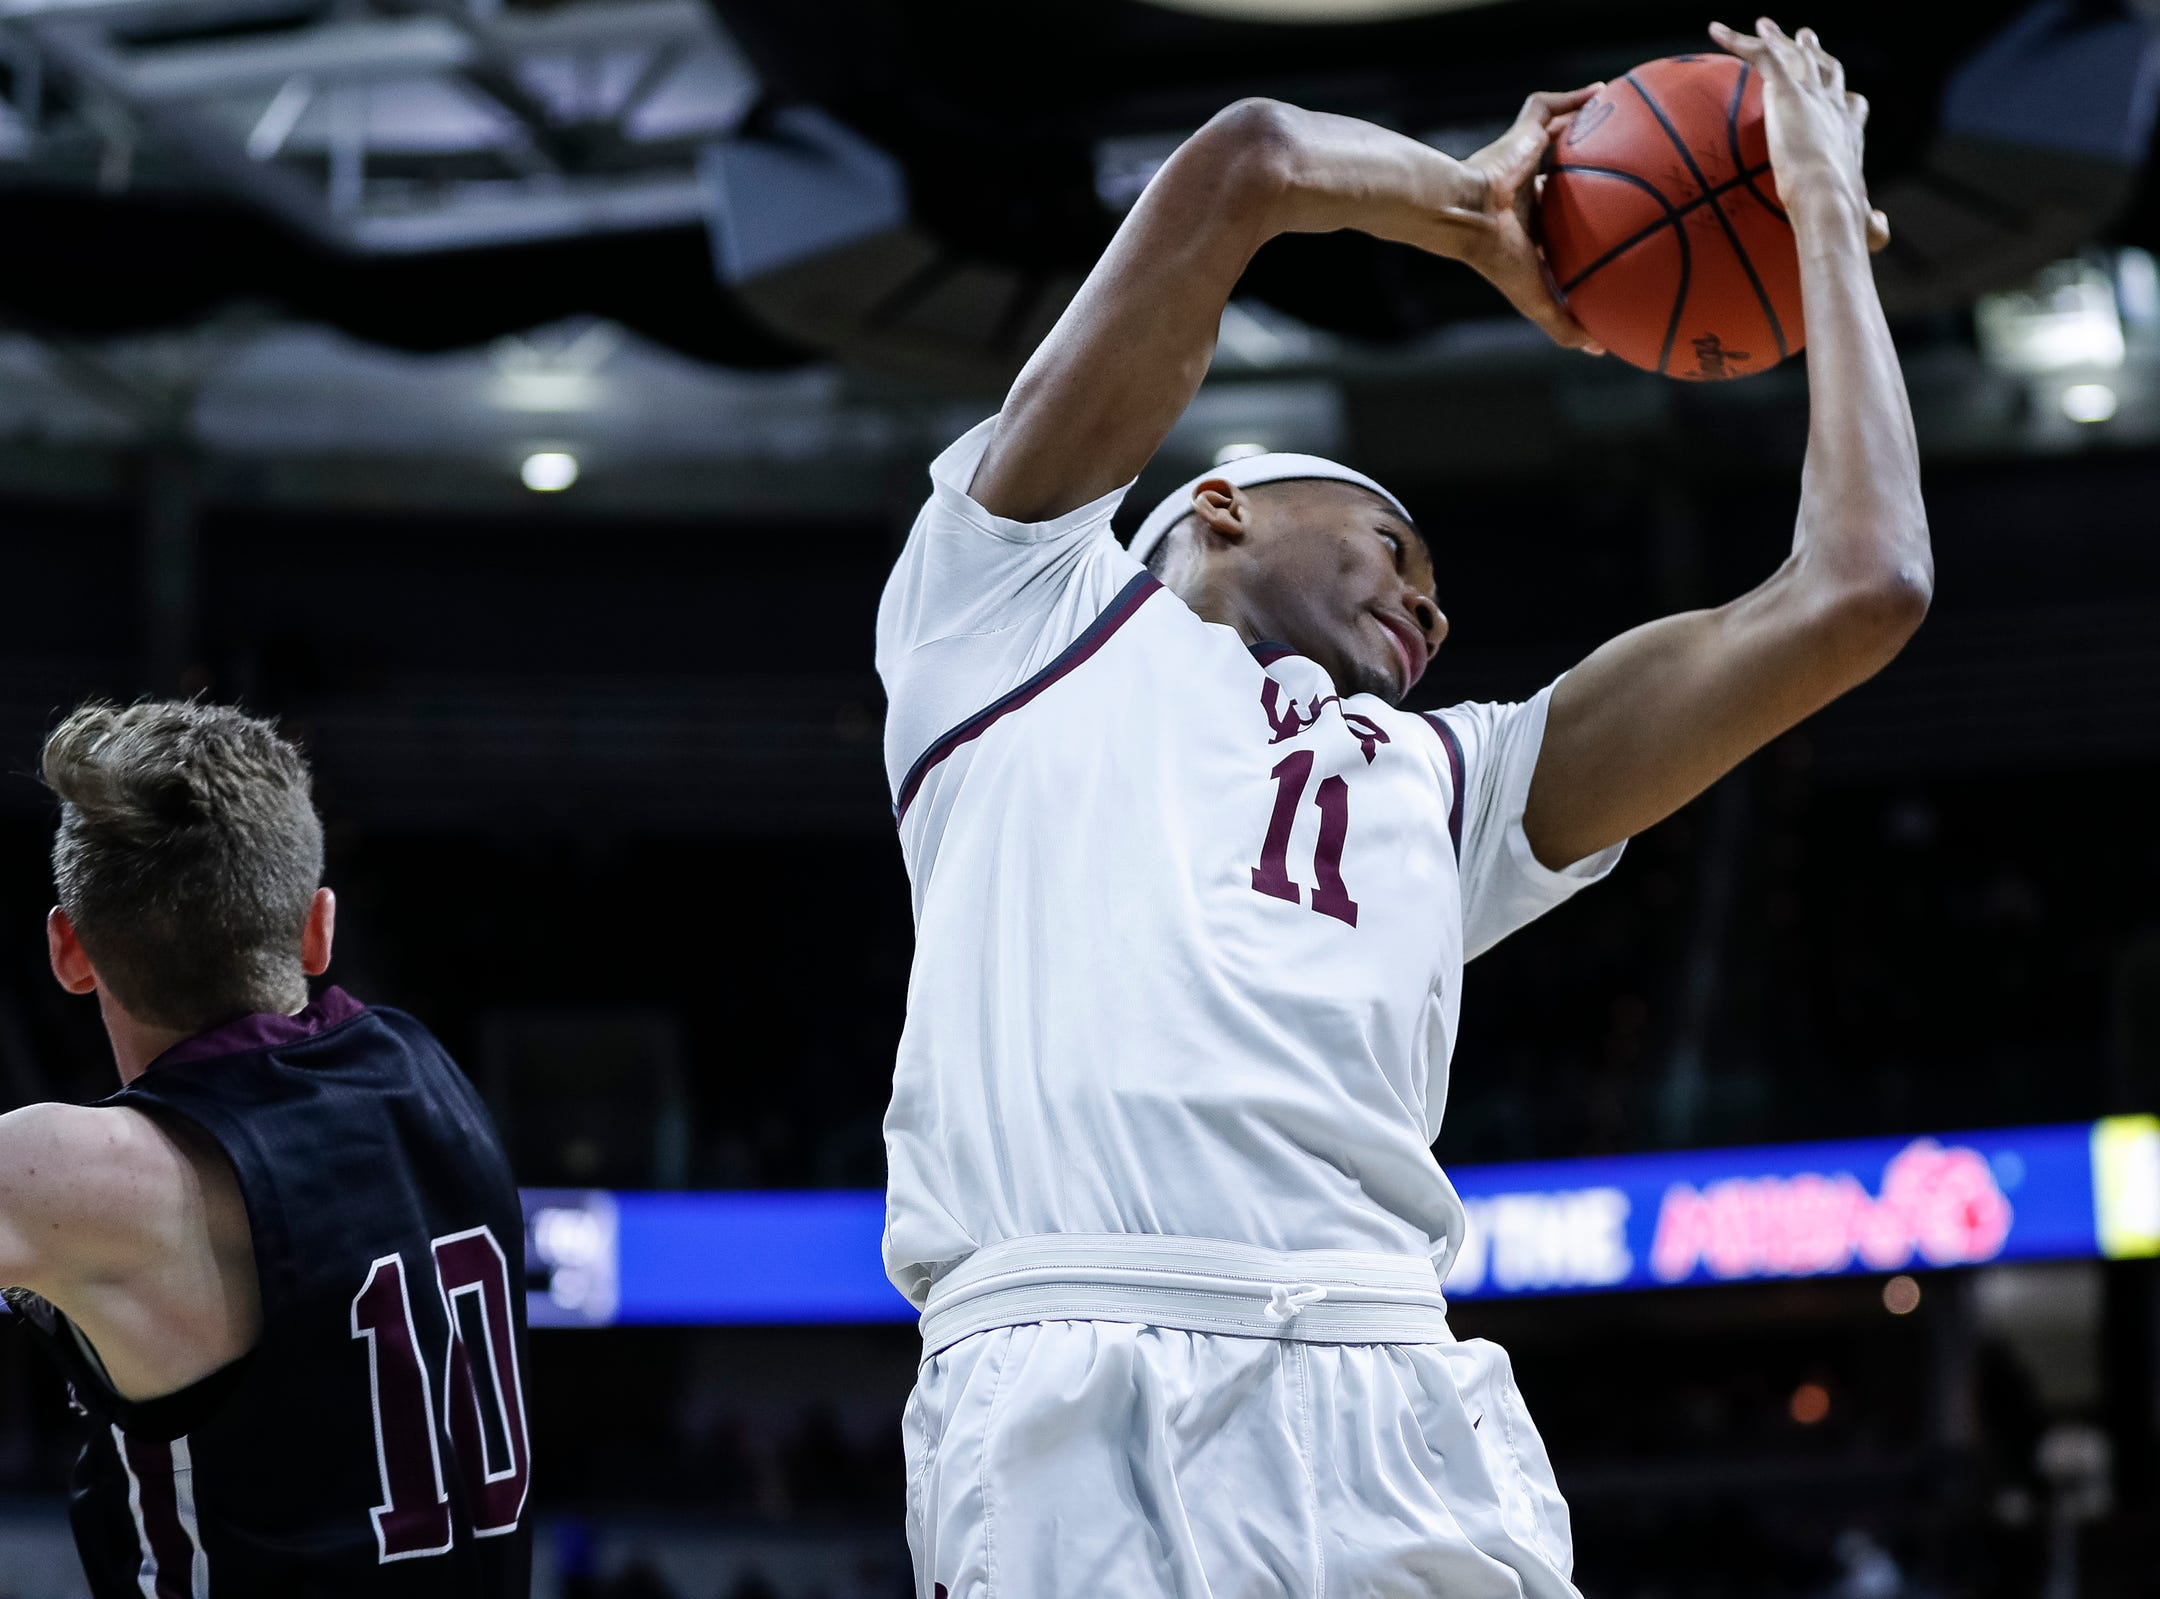 U-D Jesuit's Jalen Thomas (11) and Okemos' Zach Hetfield (10) battle for a rebound during the first half of MHSAA Division 1 semifinal at the Breslin Center in East Lansing, Friday, March 15, 2019.